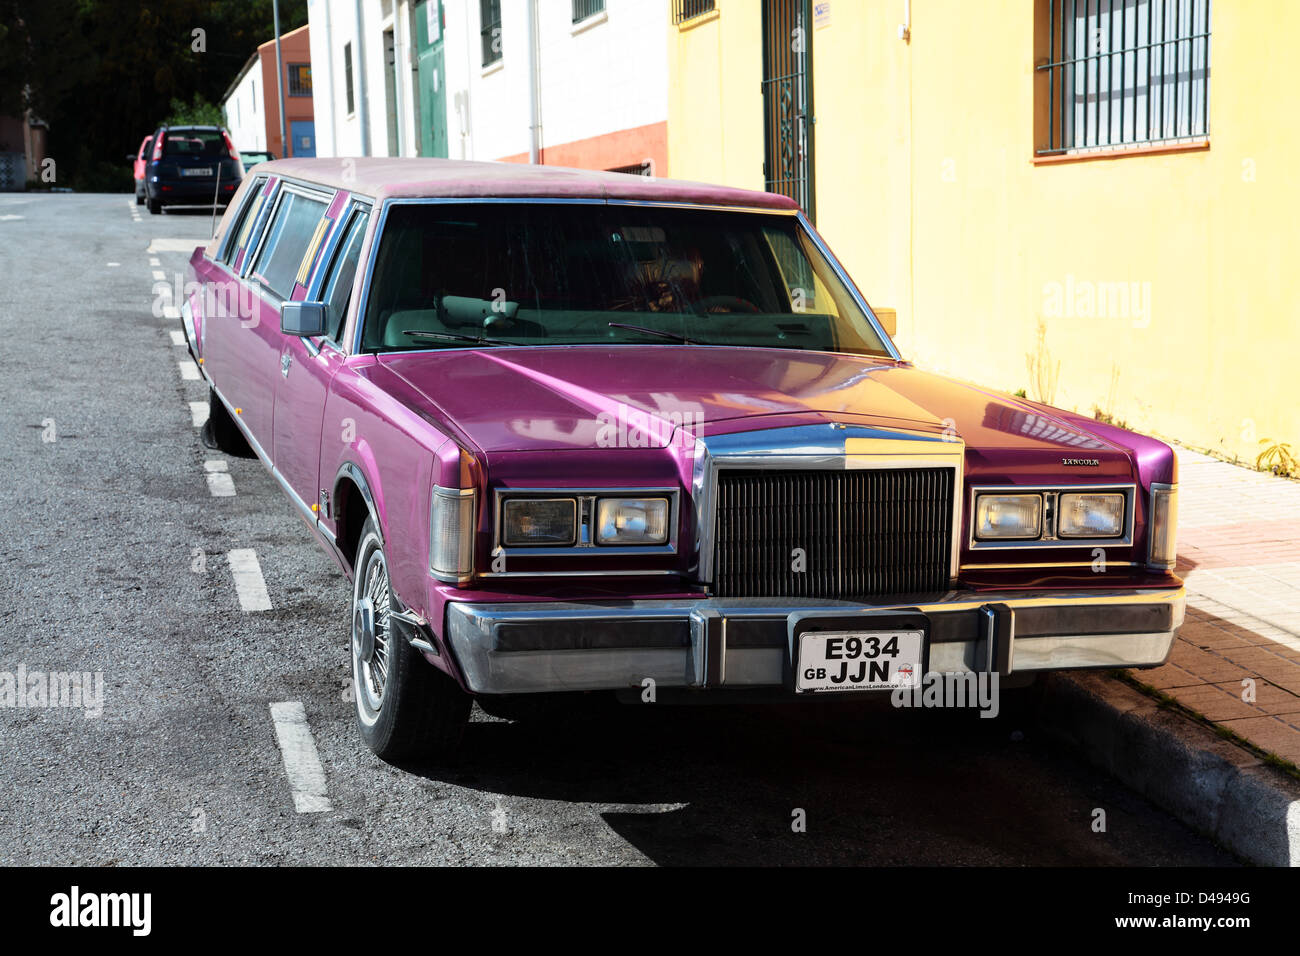 purple Lincoln continental stretched limousine parked on road side - Stock Image